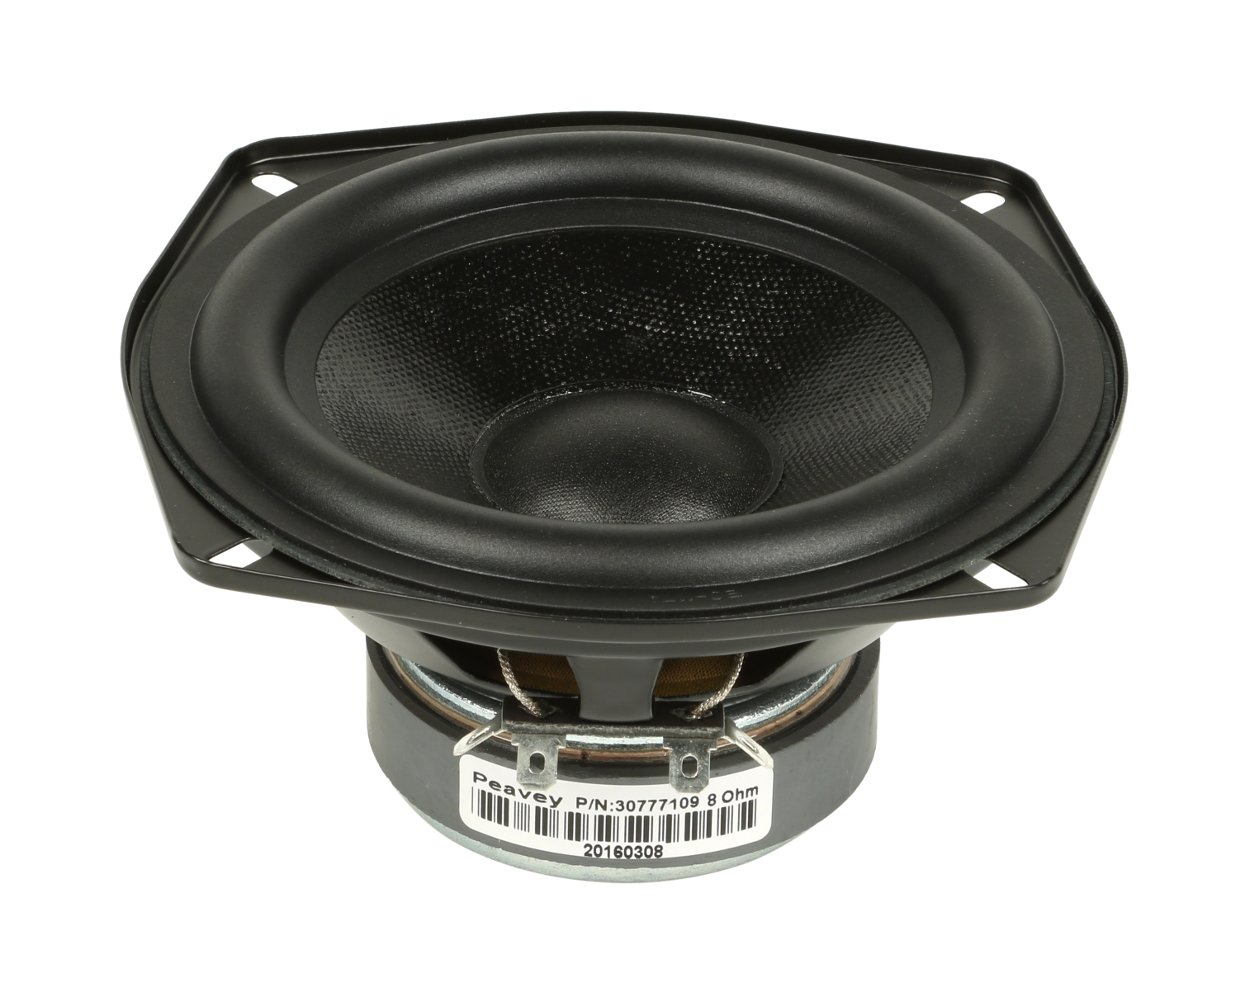 Peavey 30777109 Impulse 6 Replacement Woofer 30777109